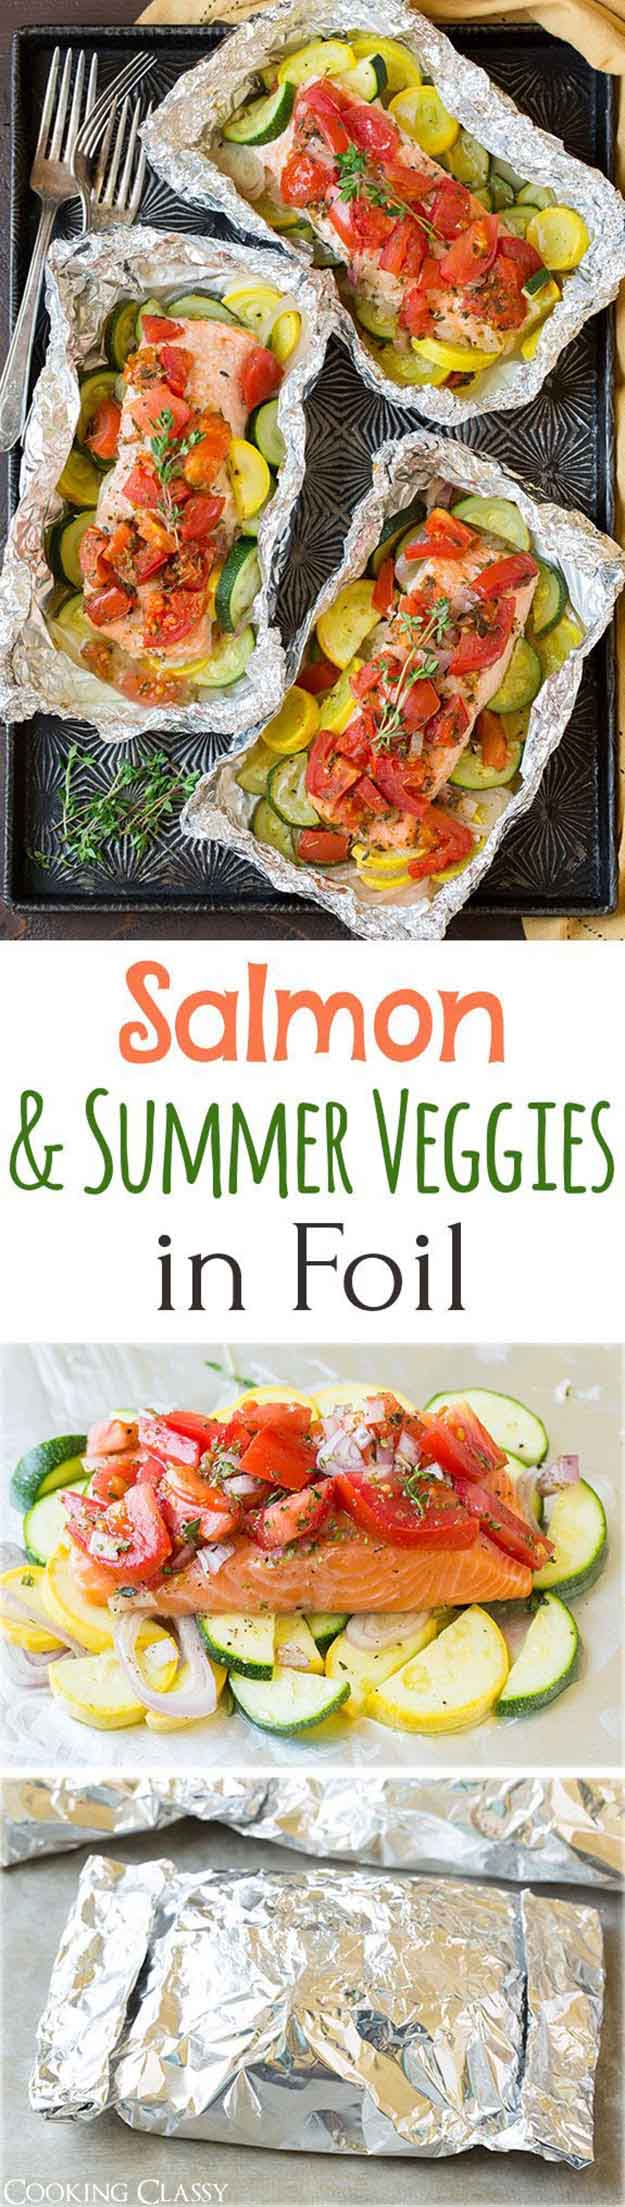 Paleo Fish Dinner Grilling Recipes | Salmon & Vegetable Foil Packets | Grilled Salmon & Veggies in Foil | DIY Projects & Crafts by DIY JOY at http://diyjoy.com/grilling-recipes-diy-bbq-ideas